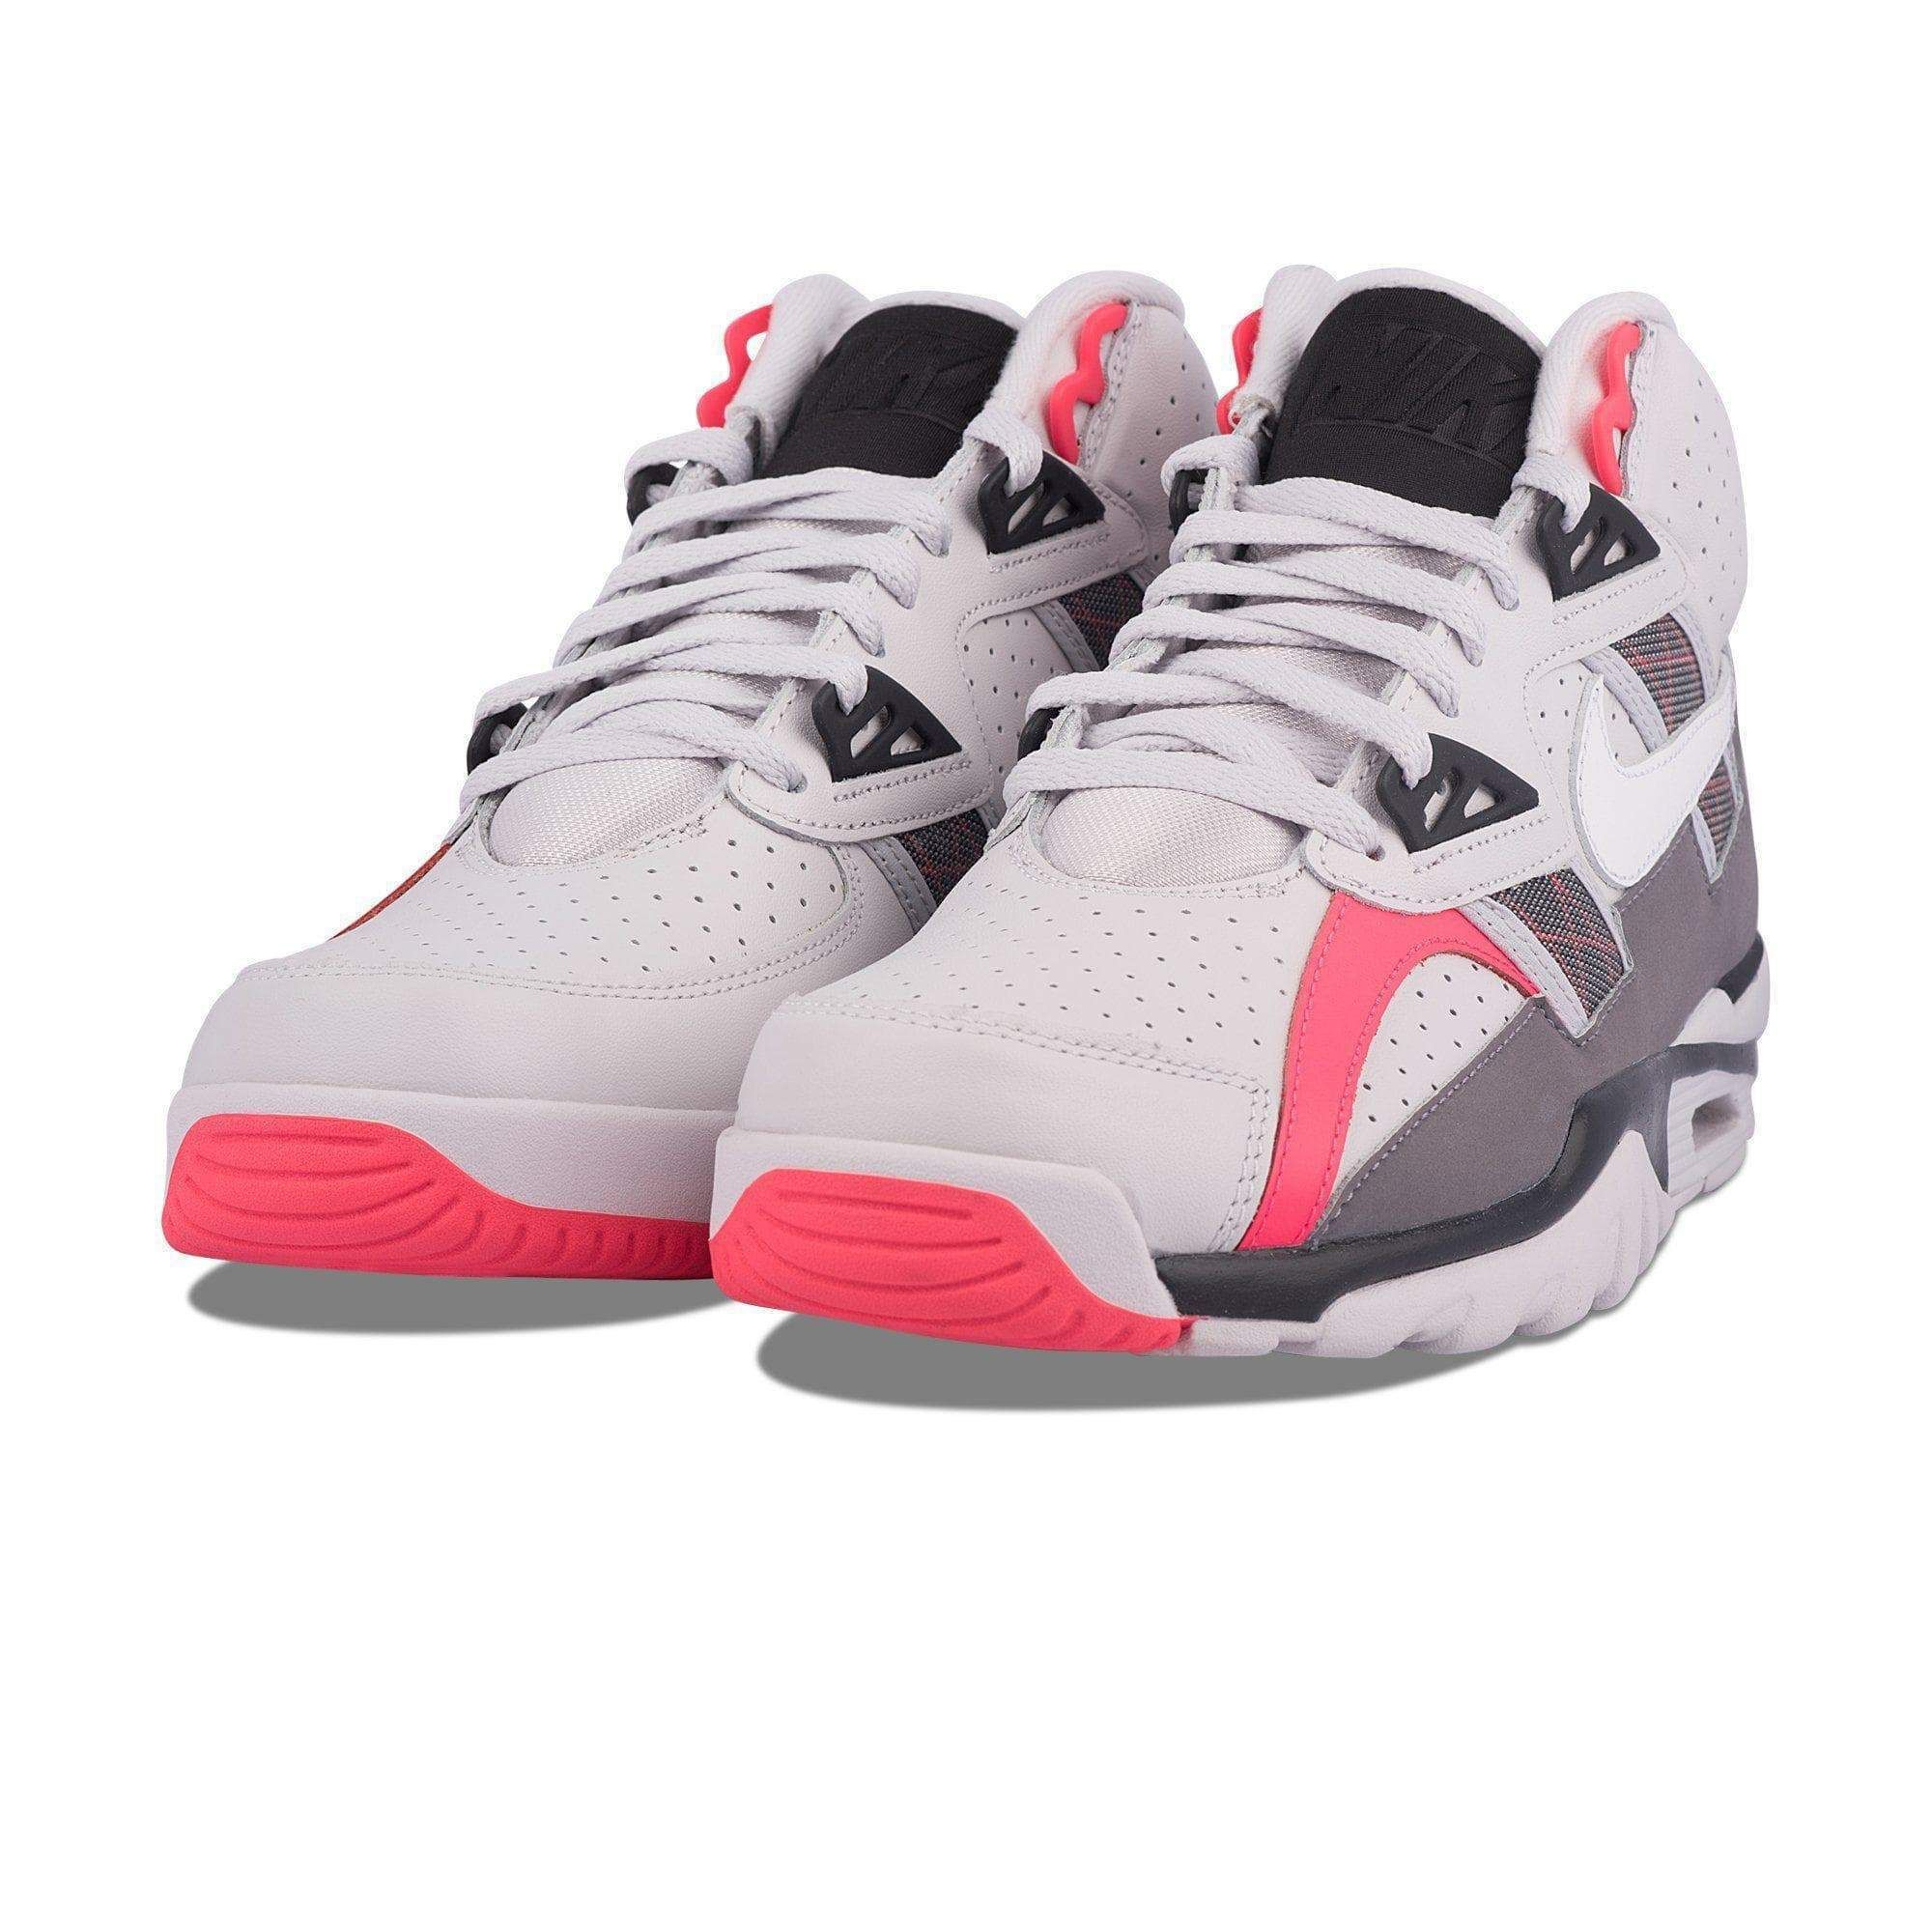 low priced 2159c 2eb5c FOOTWEAR - Nike Air Trainer SC High - Mens